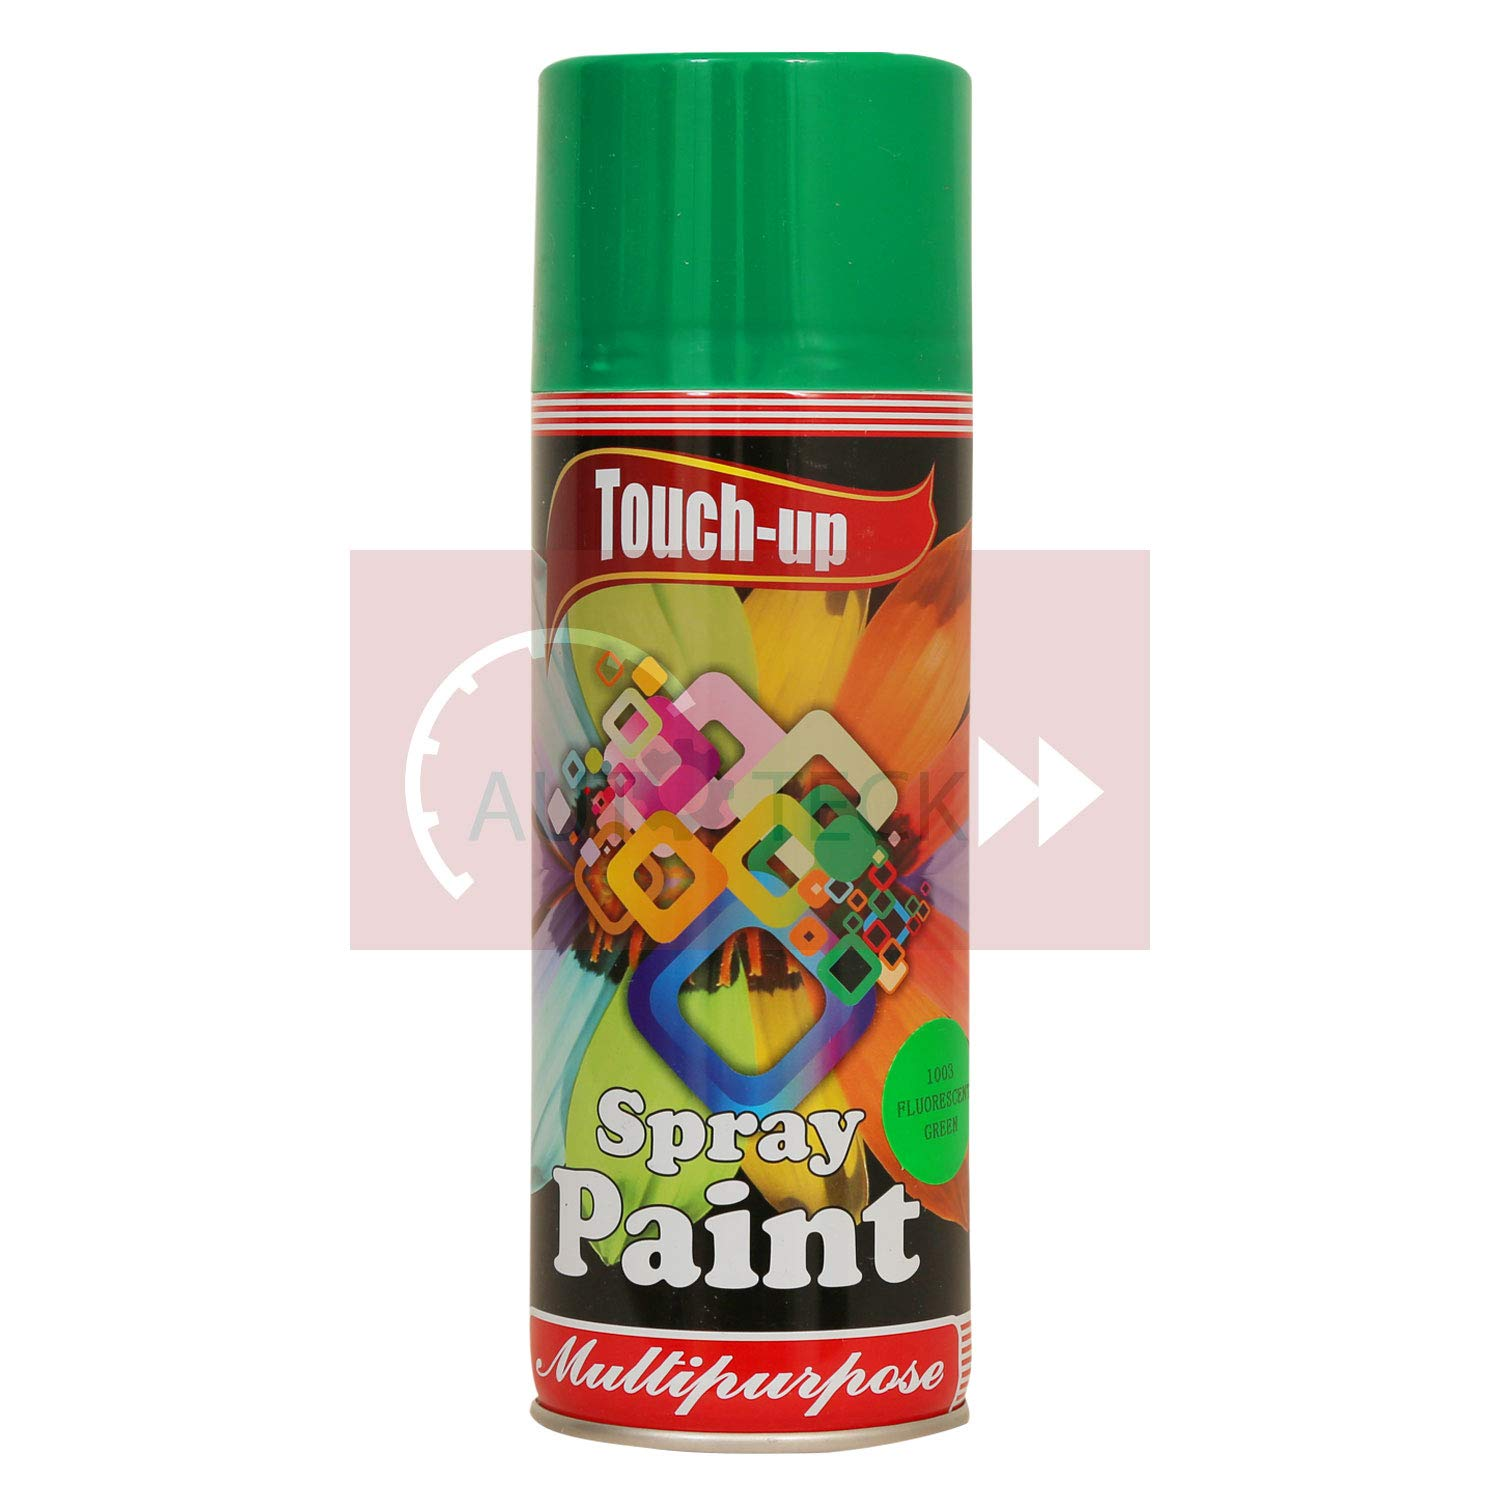 Touch Up: Aerosol Spray Paint (Fluorescent Green) Ready-to-Use Car Bike Spray Painting Home & Furniture Spray Paint 400 ML product image